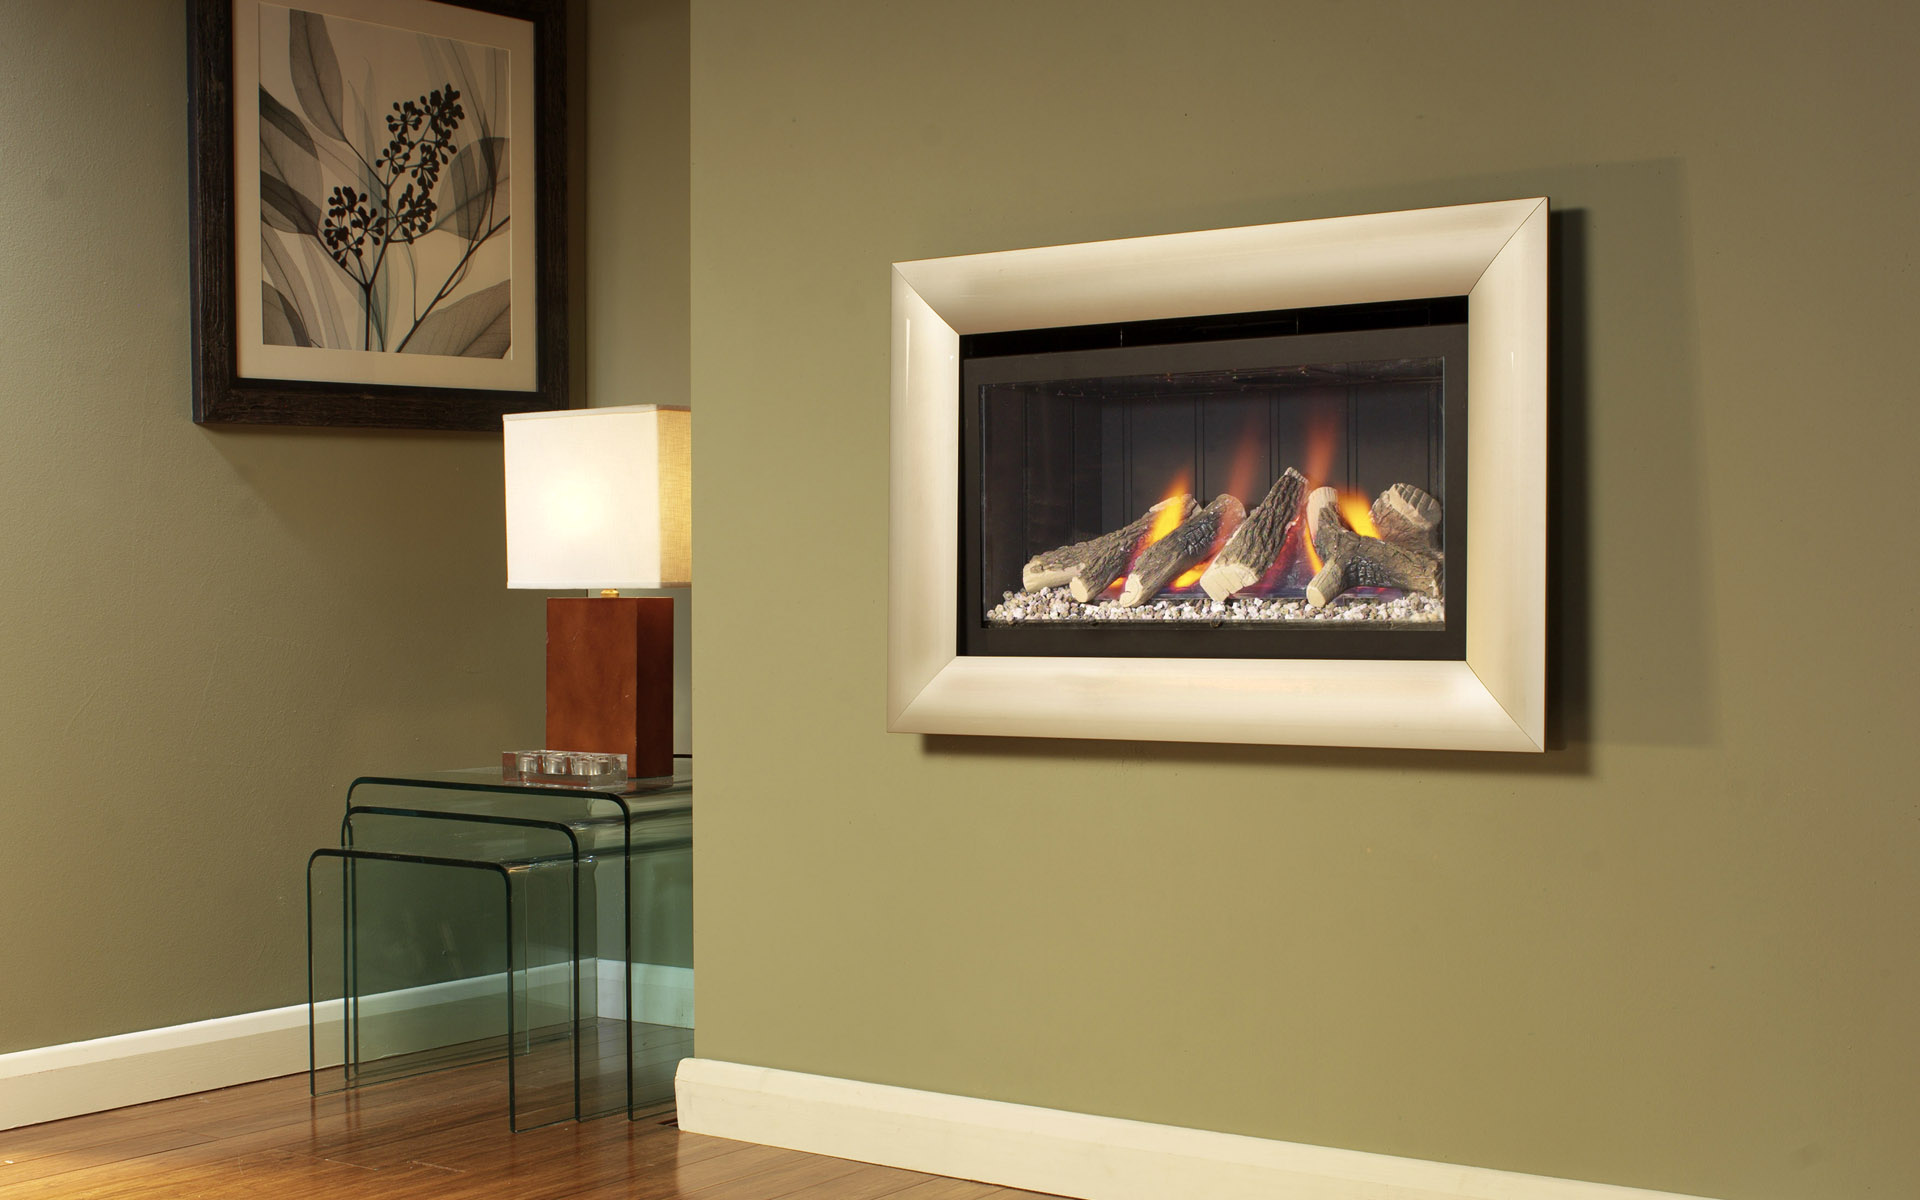 Western-style home fireplace 23070